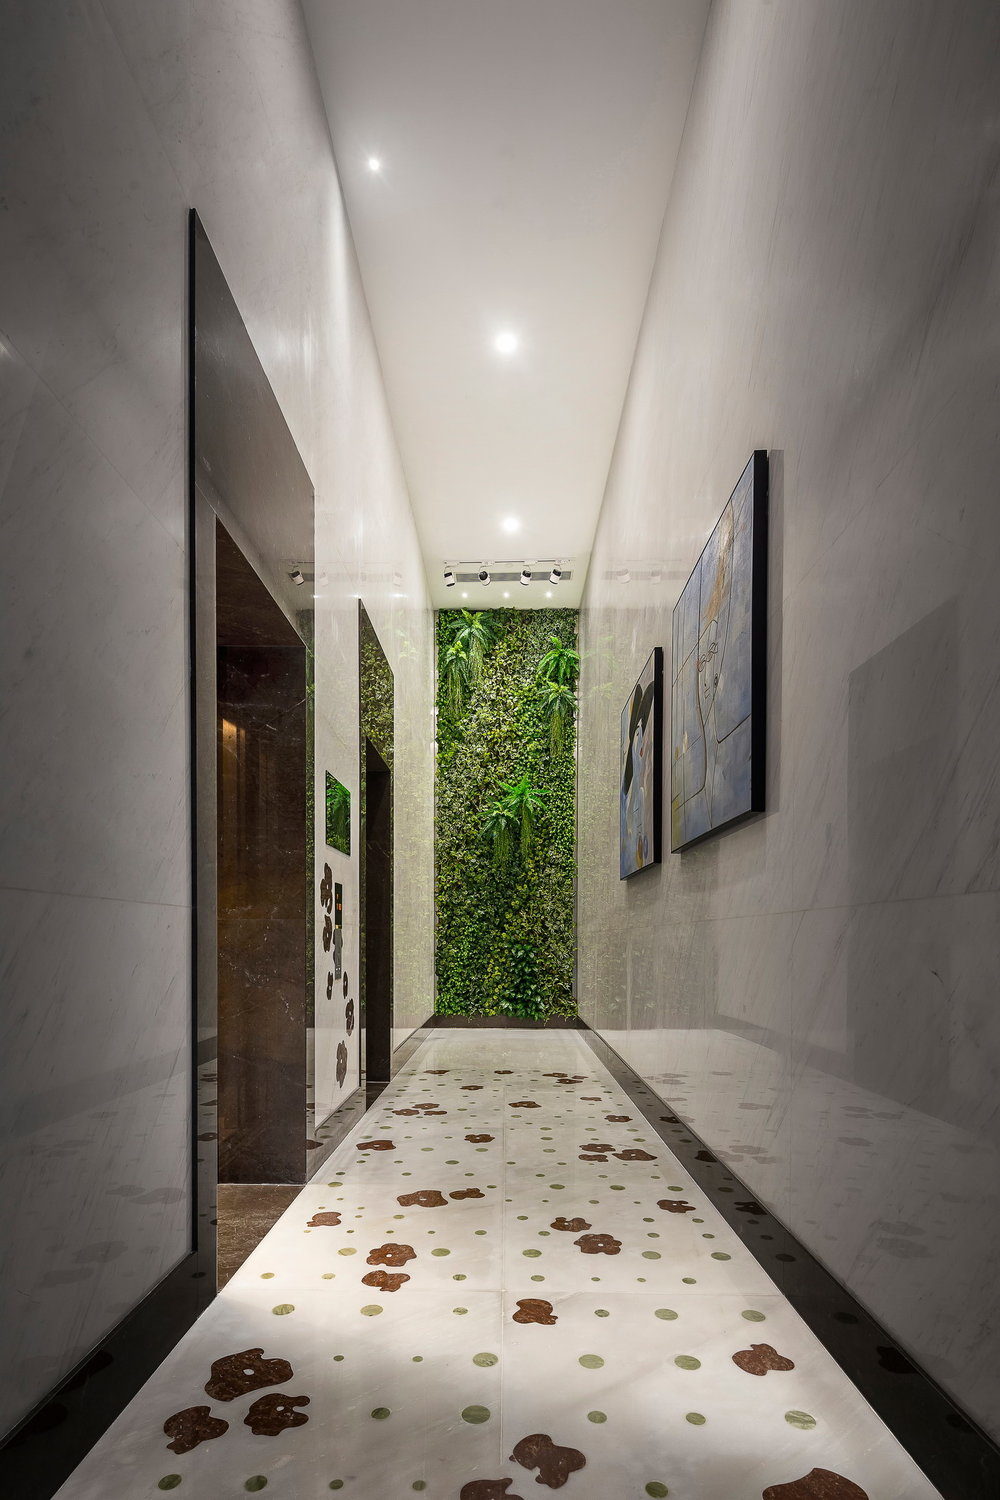 The floor is inlaid with marble flowers and the wall at the end of the corridor is made up entirely of plants